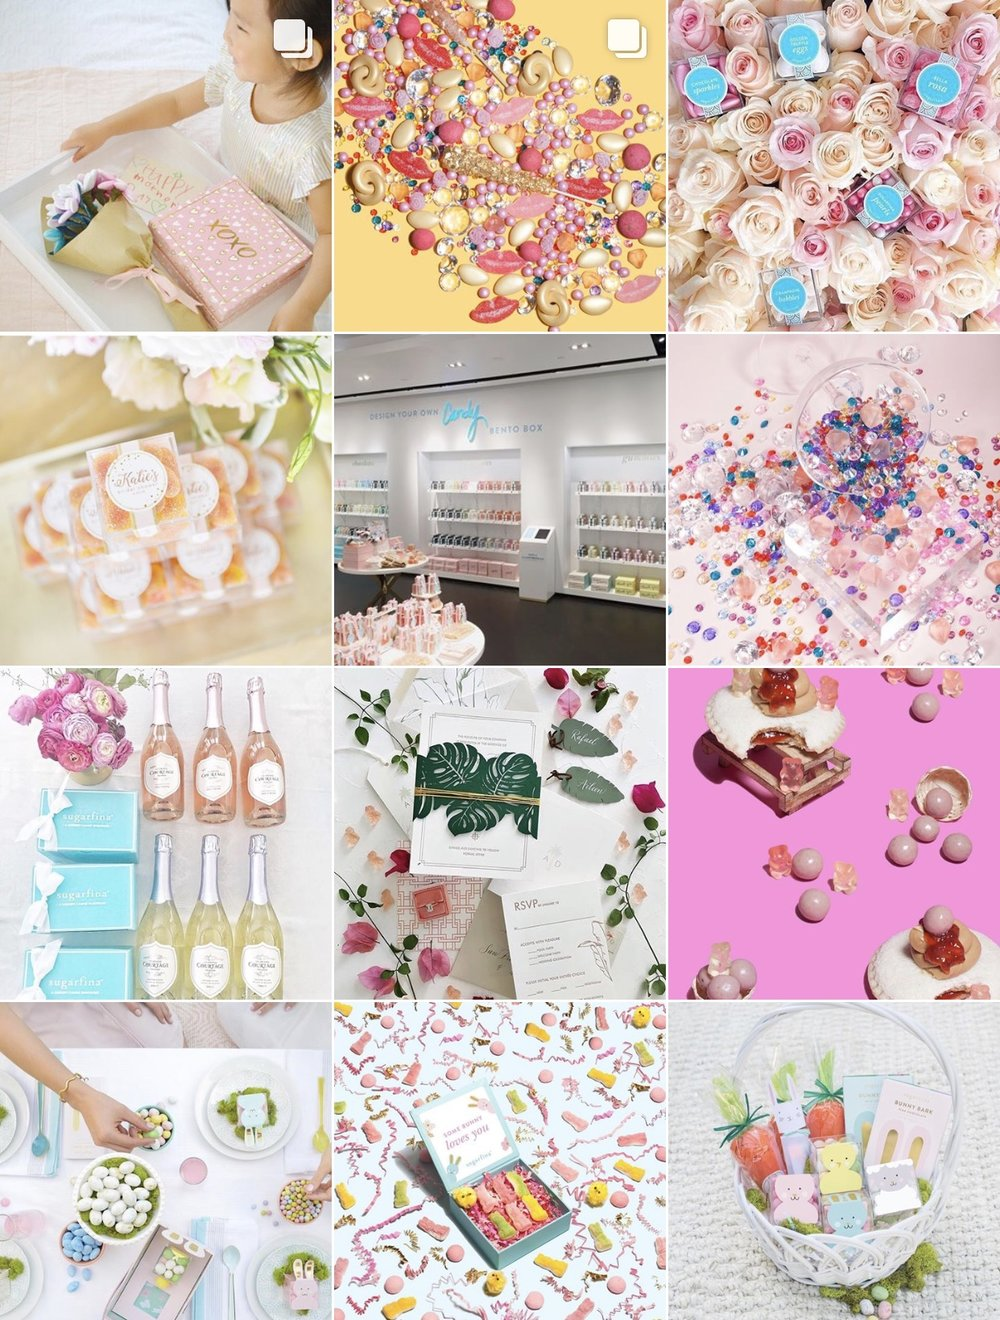 Instagram:  Sugarfina  Fun colorful candy - what could be sweeter?